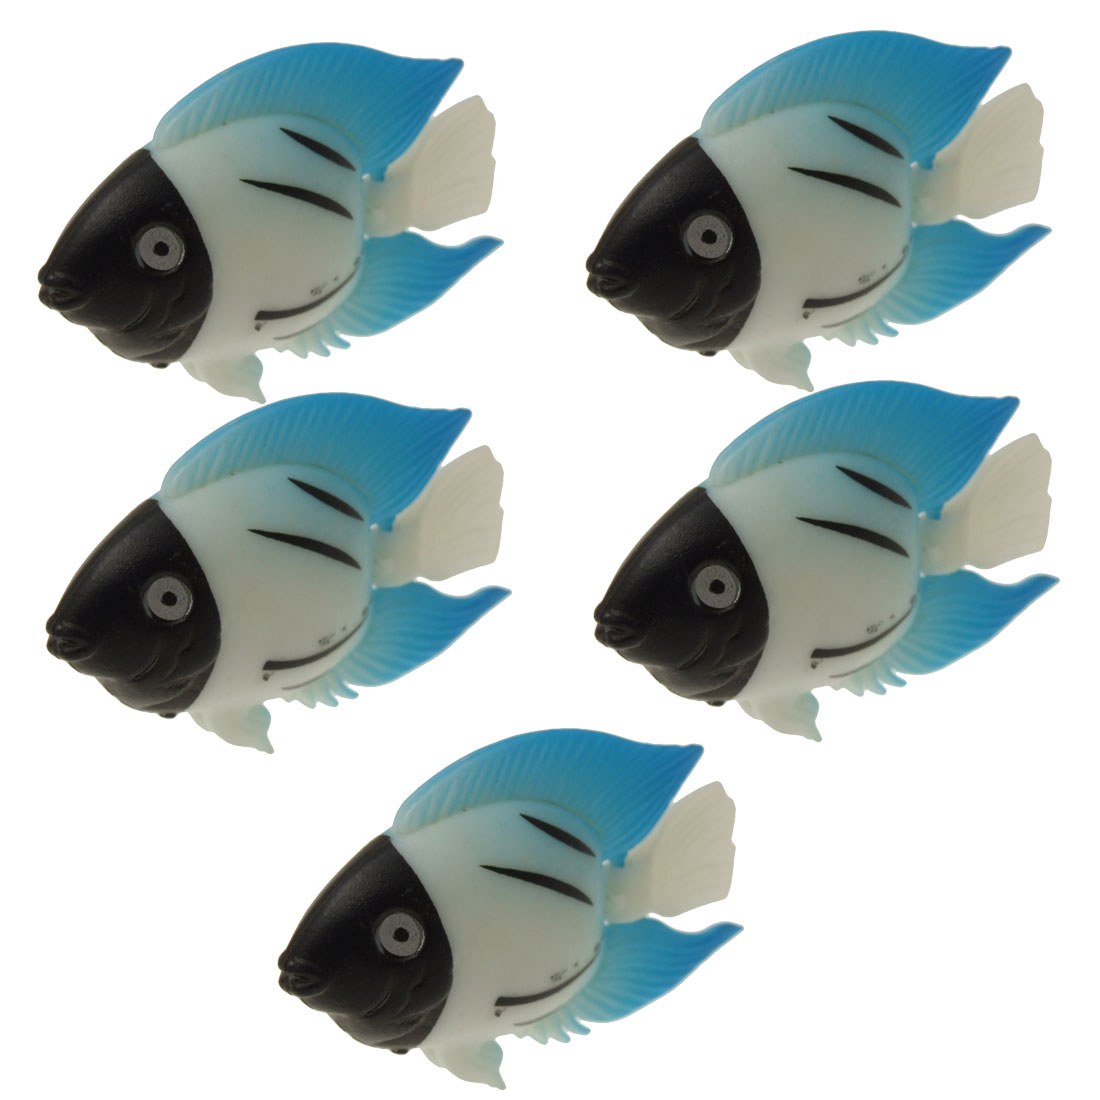 Set of 5 Decorative Aquarium Tank Plastic Floating Fish